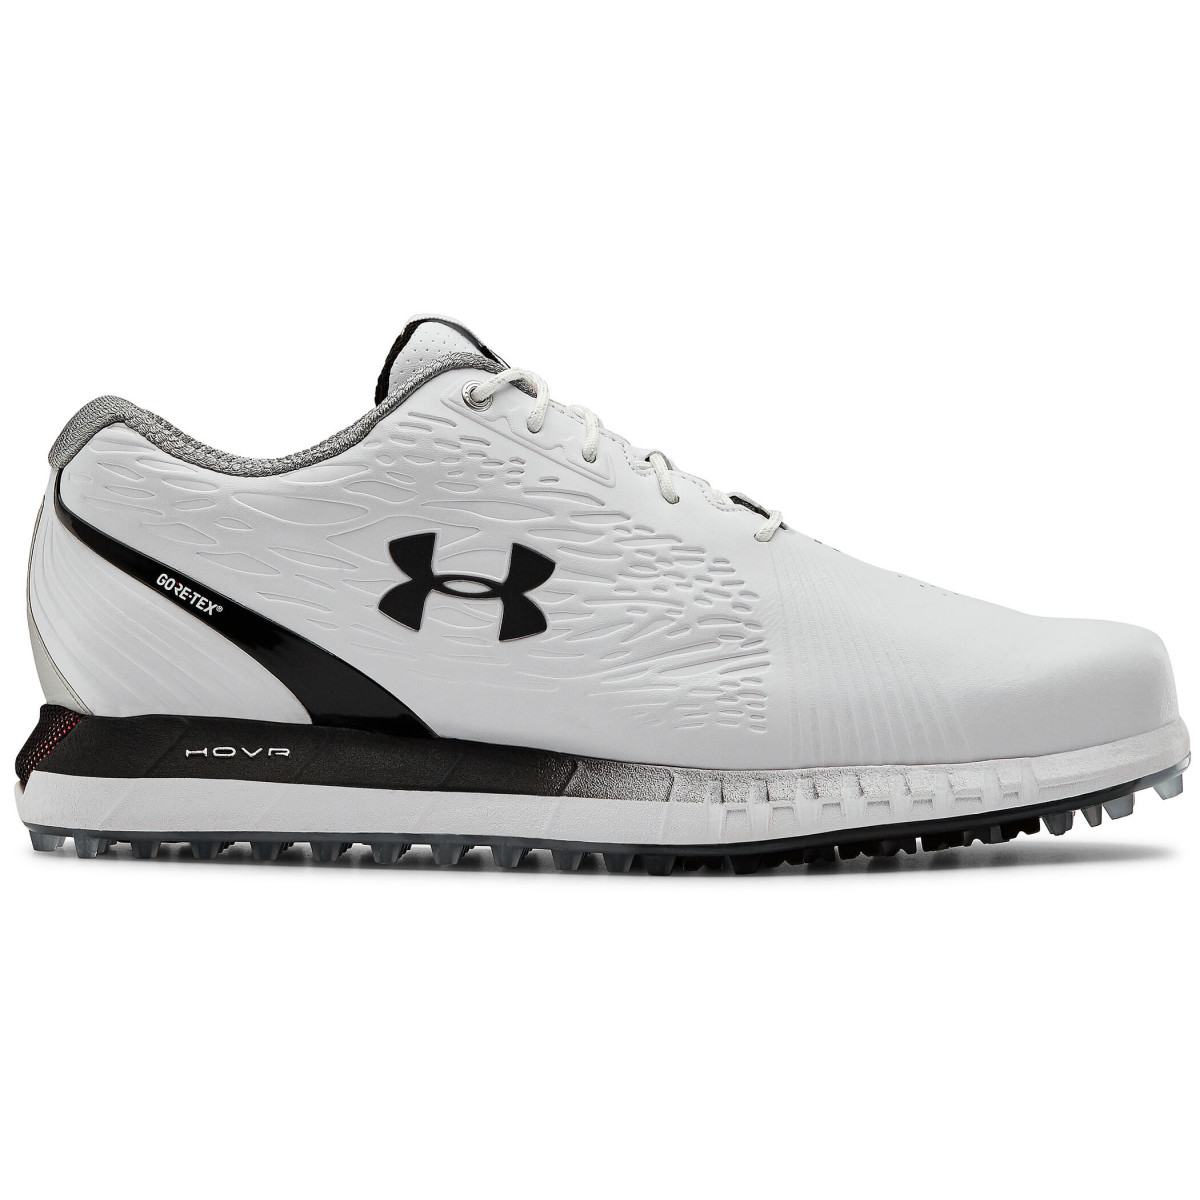 Under Armour Men's 2020 HOVR Show GTX White Golf Shoe